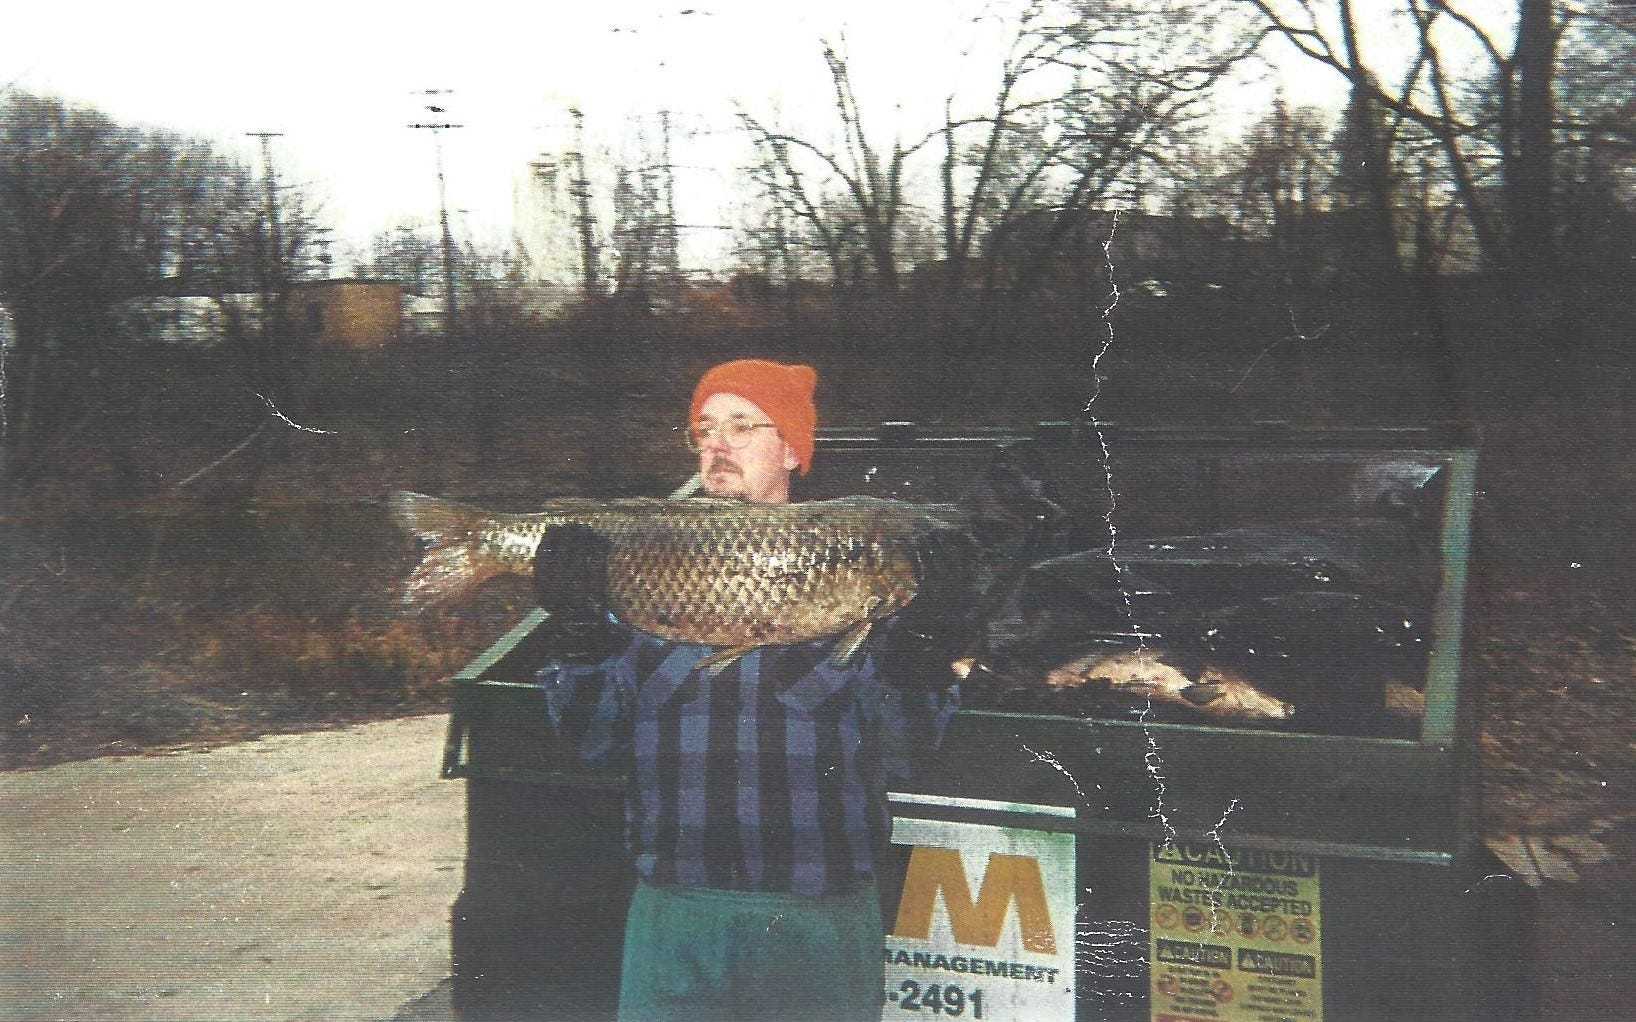 A man carries dead fish from the White River to a dumpster after the Guide spill in December of 1999. The Guide Corp. in Anderson dumped toxic chemicals into the White River, ultimately killing more than 4 million fish through Downtown Indianapolis.